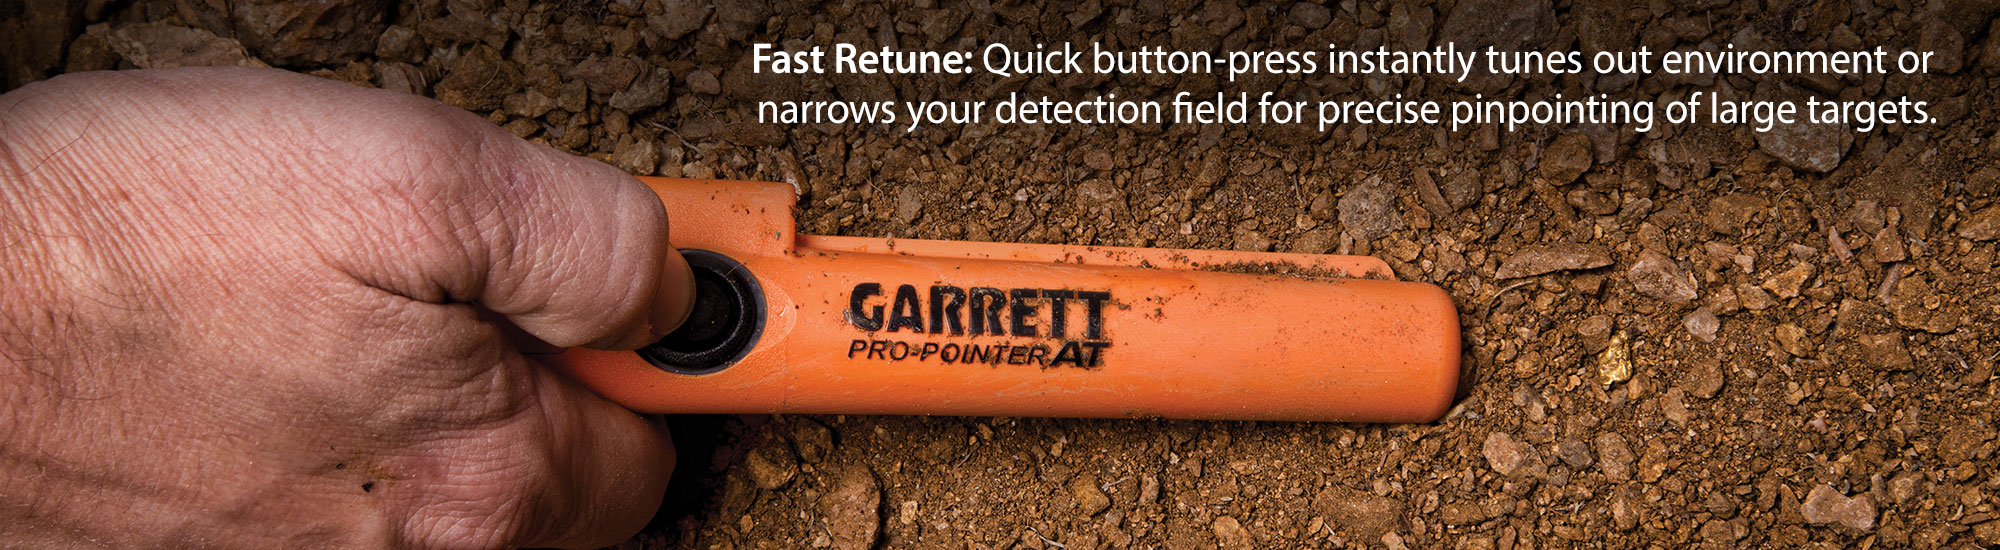 Fast Retune: Quick button-press instantly tunes out environment or narrows your detection field for precise pinpointing of large targets.